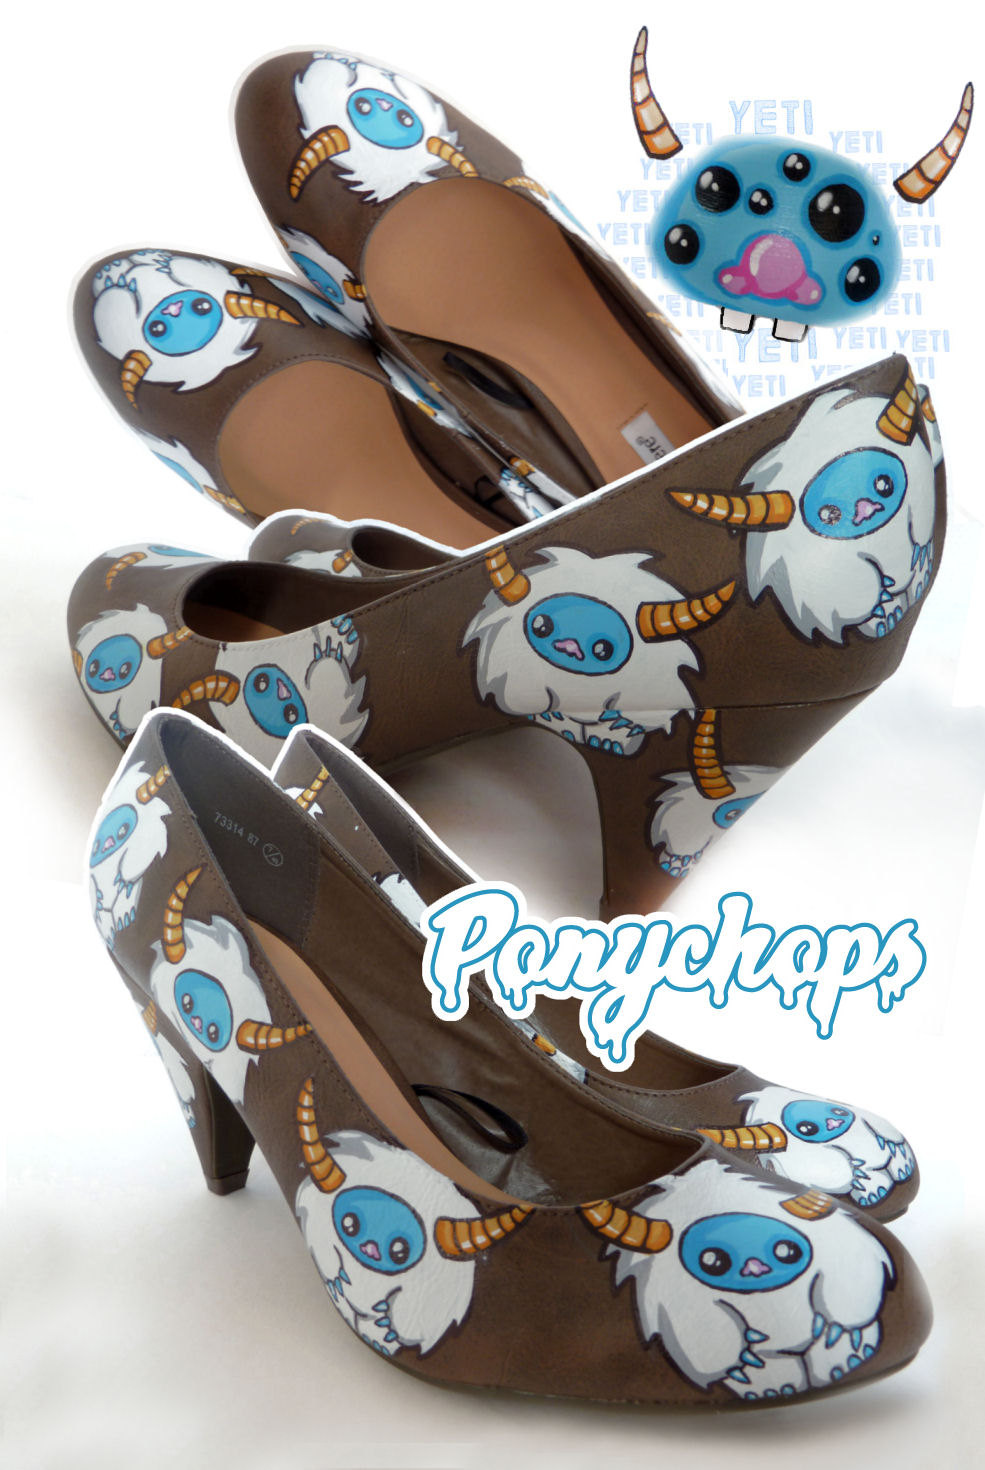 Pony Chops' Whimsical World of Shoes